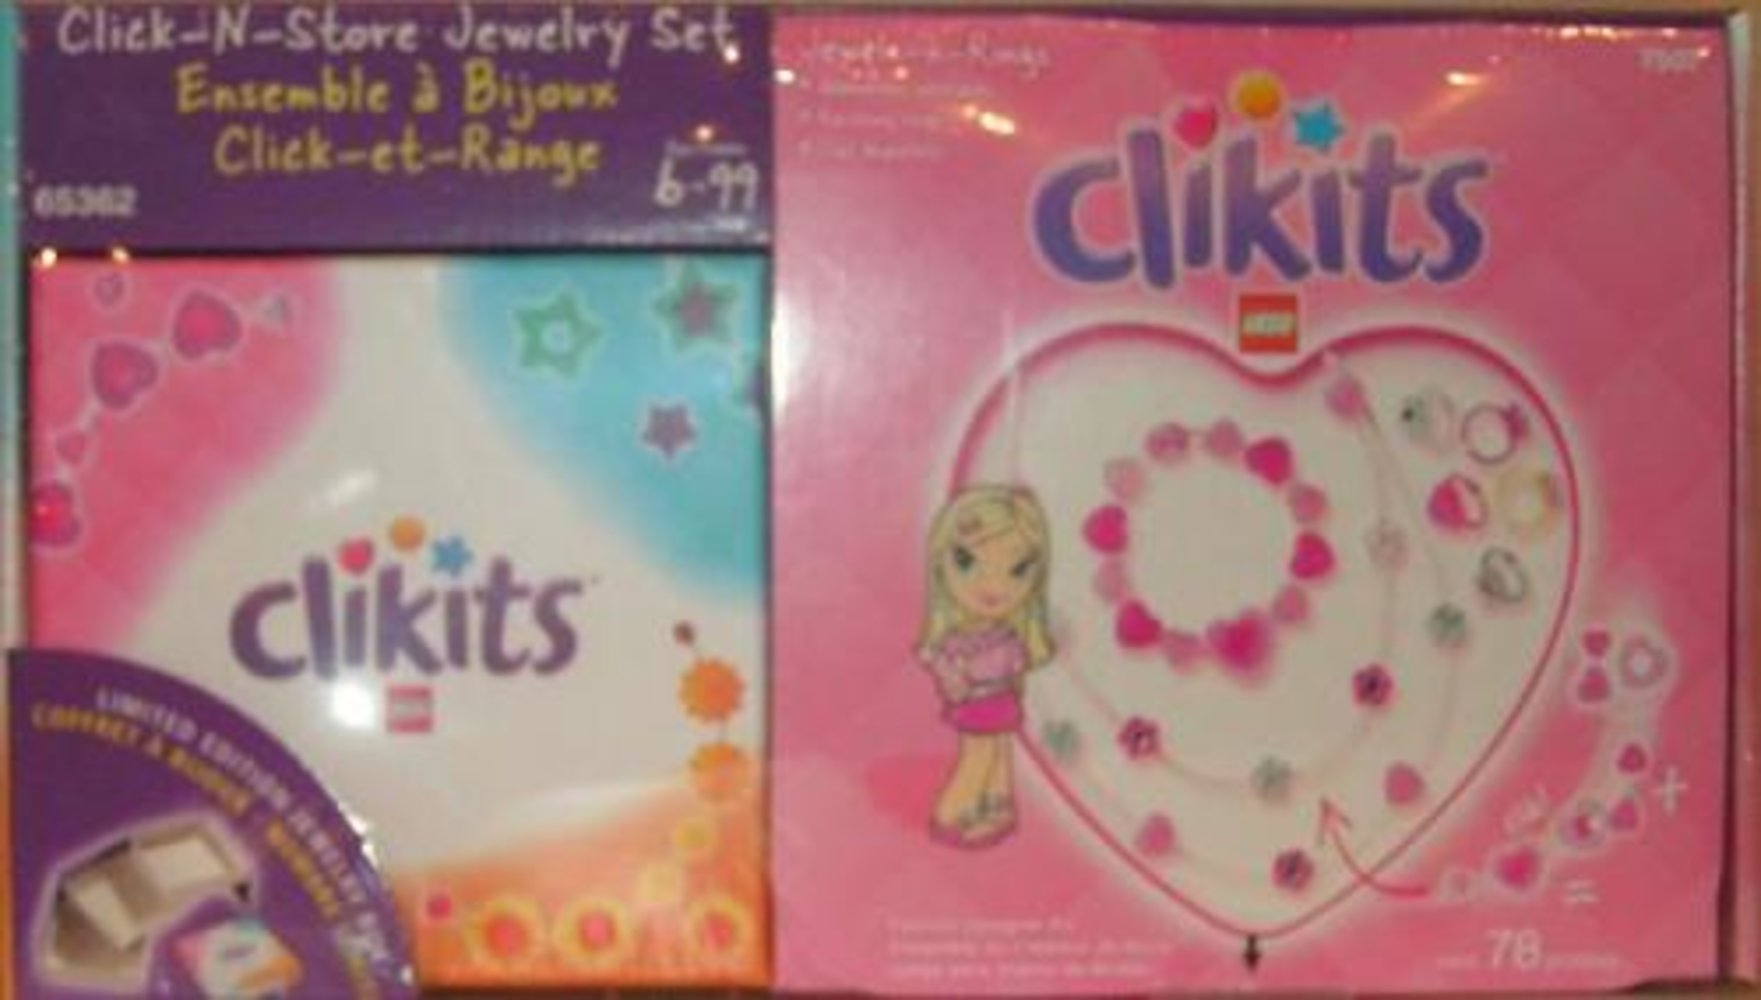 Jewels-n-Rings Click-N-Store Jewelry Set Co-Pack (7507 with jewelry box)